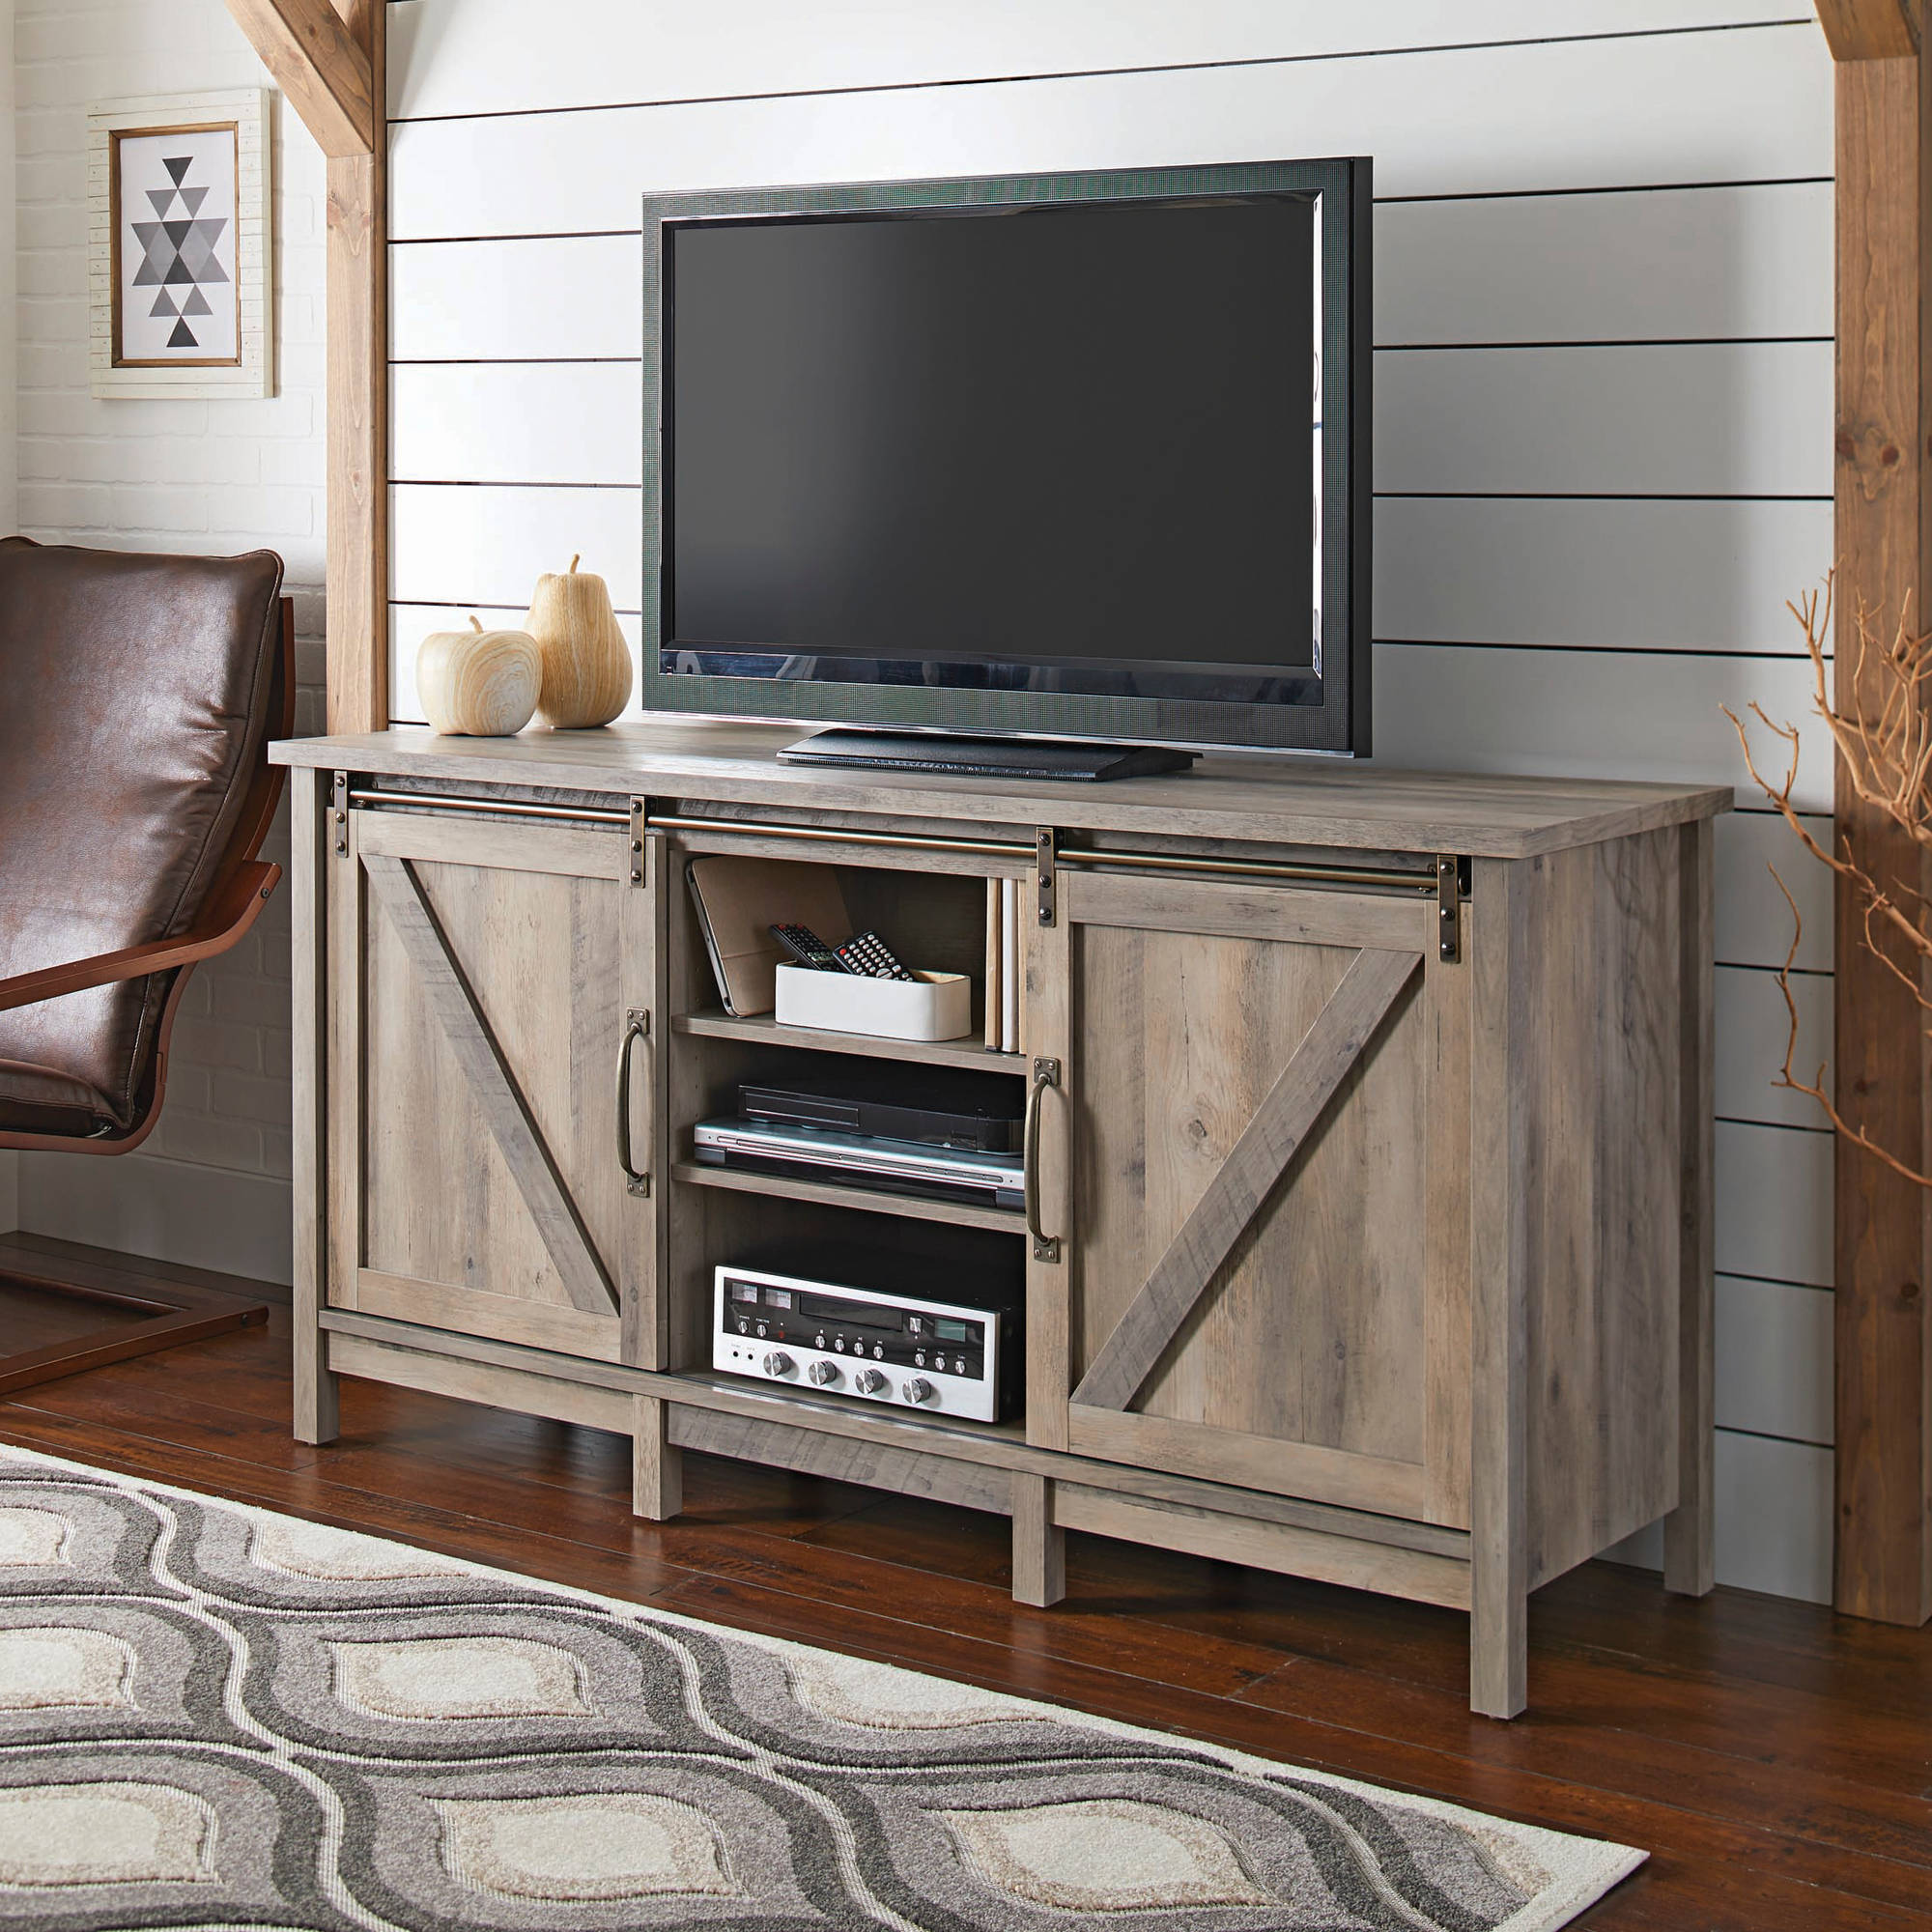 Better Homes And Gardens Modern Farmhouse TV Stand For TVs Up To 60